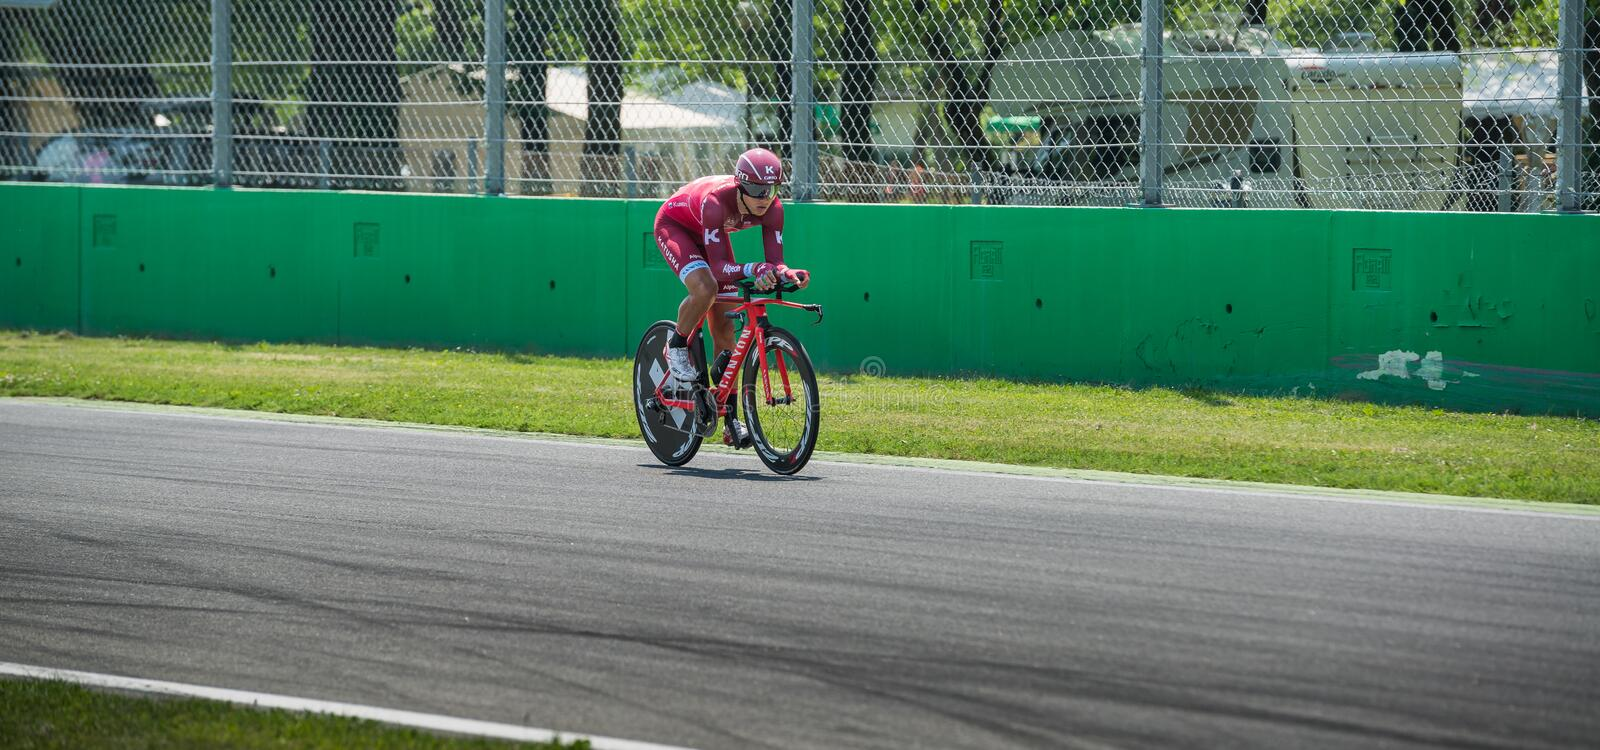 Monza, Italy May 28, 2017: Professional cyclist, Katusha Team, during the last time trial stage of the Tour of Italy 2017. With a lap of the Formula 1 circuit stock photography